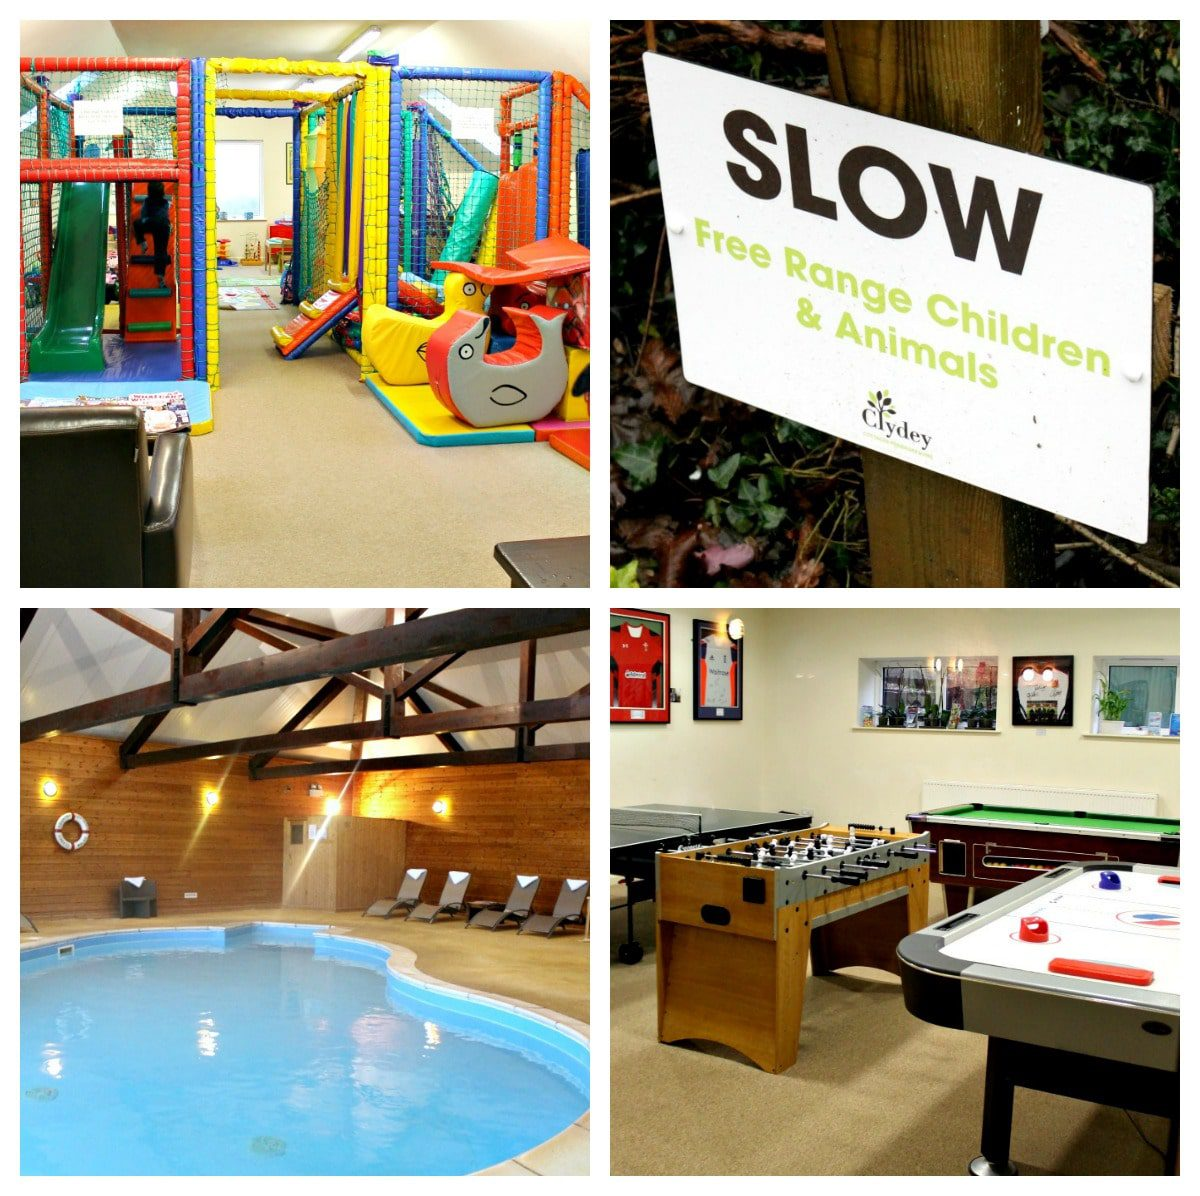 Amazing amenities abound at Clydey, from an indoor pool to numerous play areas.